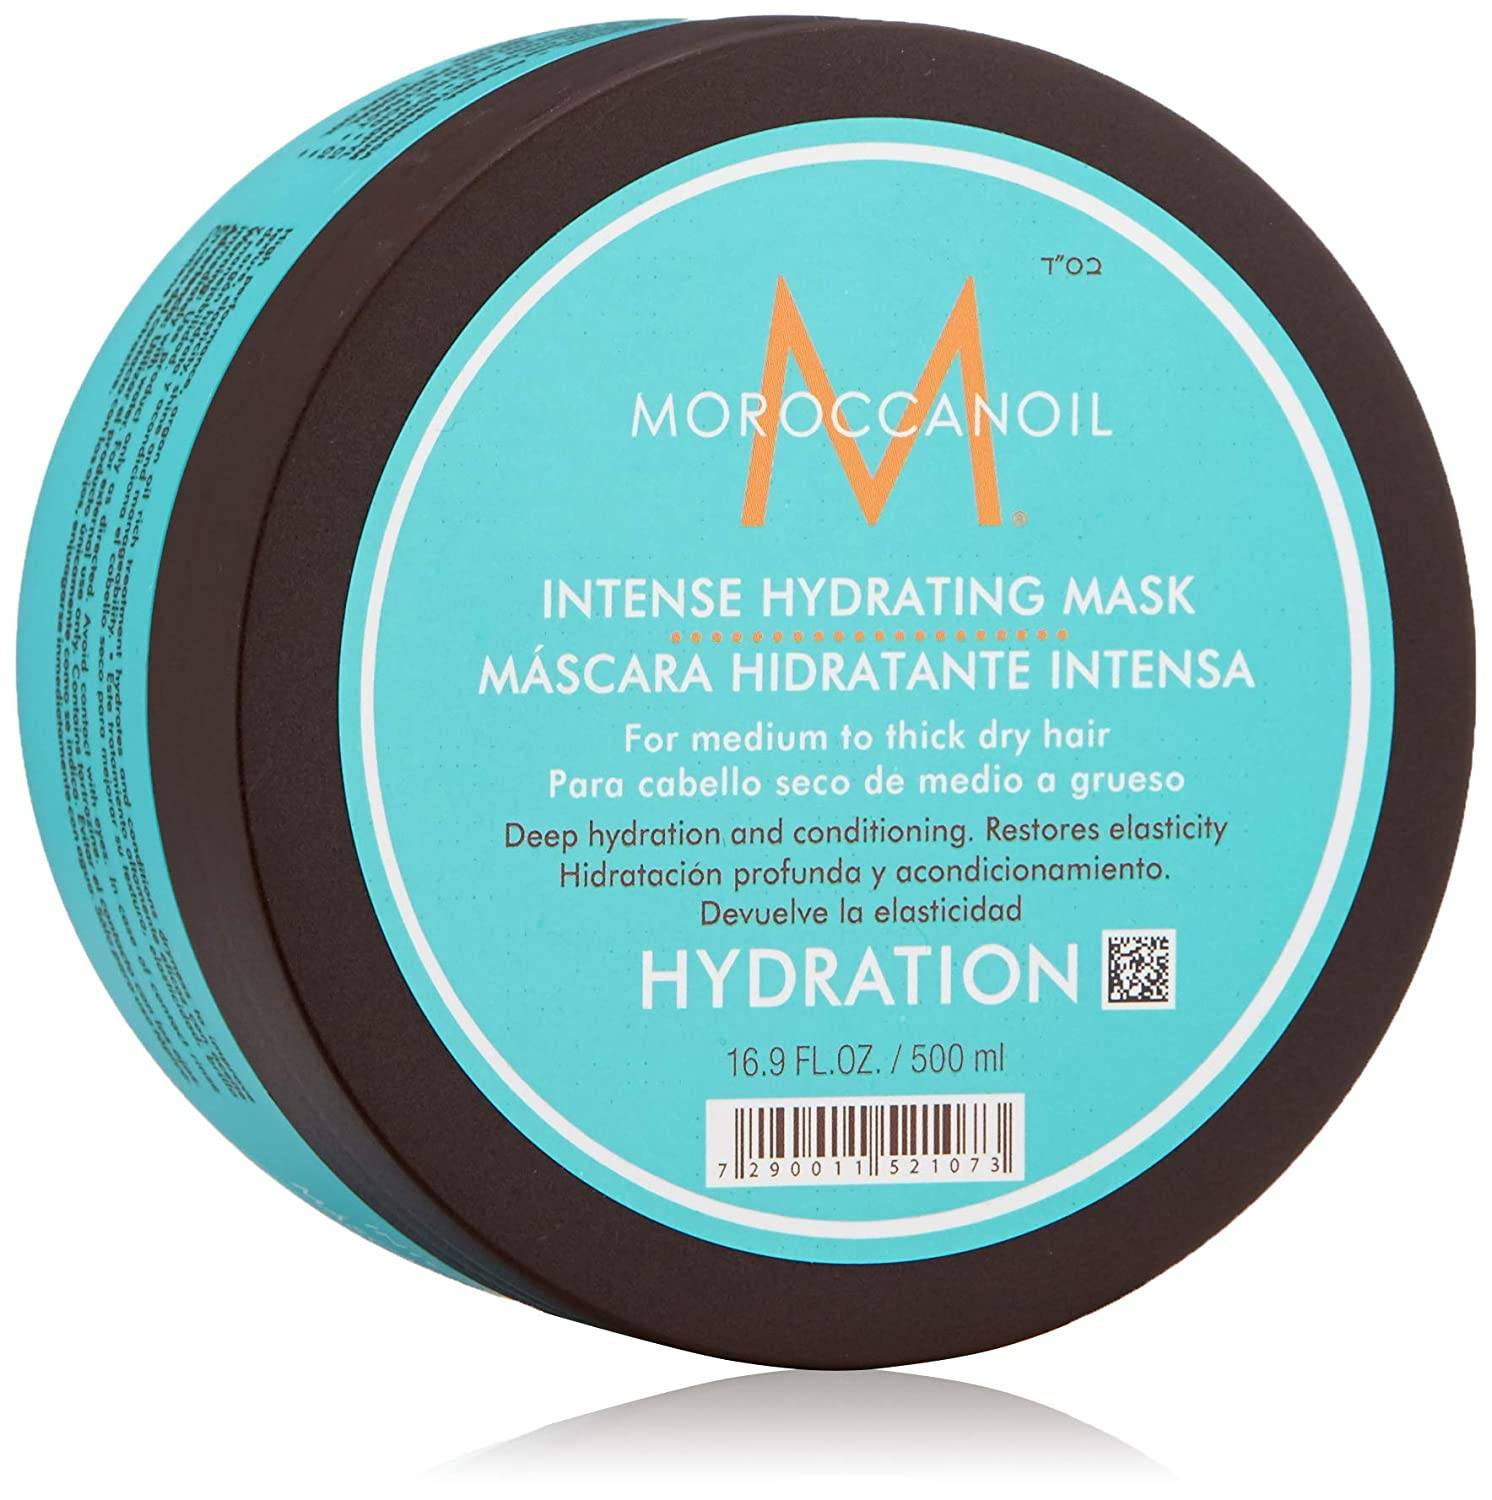 Moroccanoil Intense Hydrating Mask, Rs. 2,700